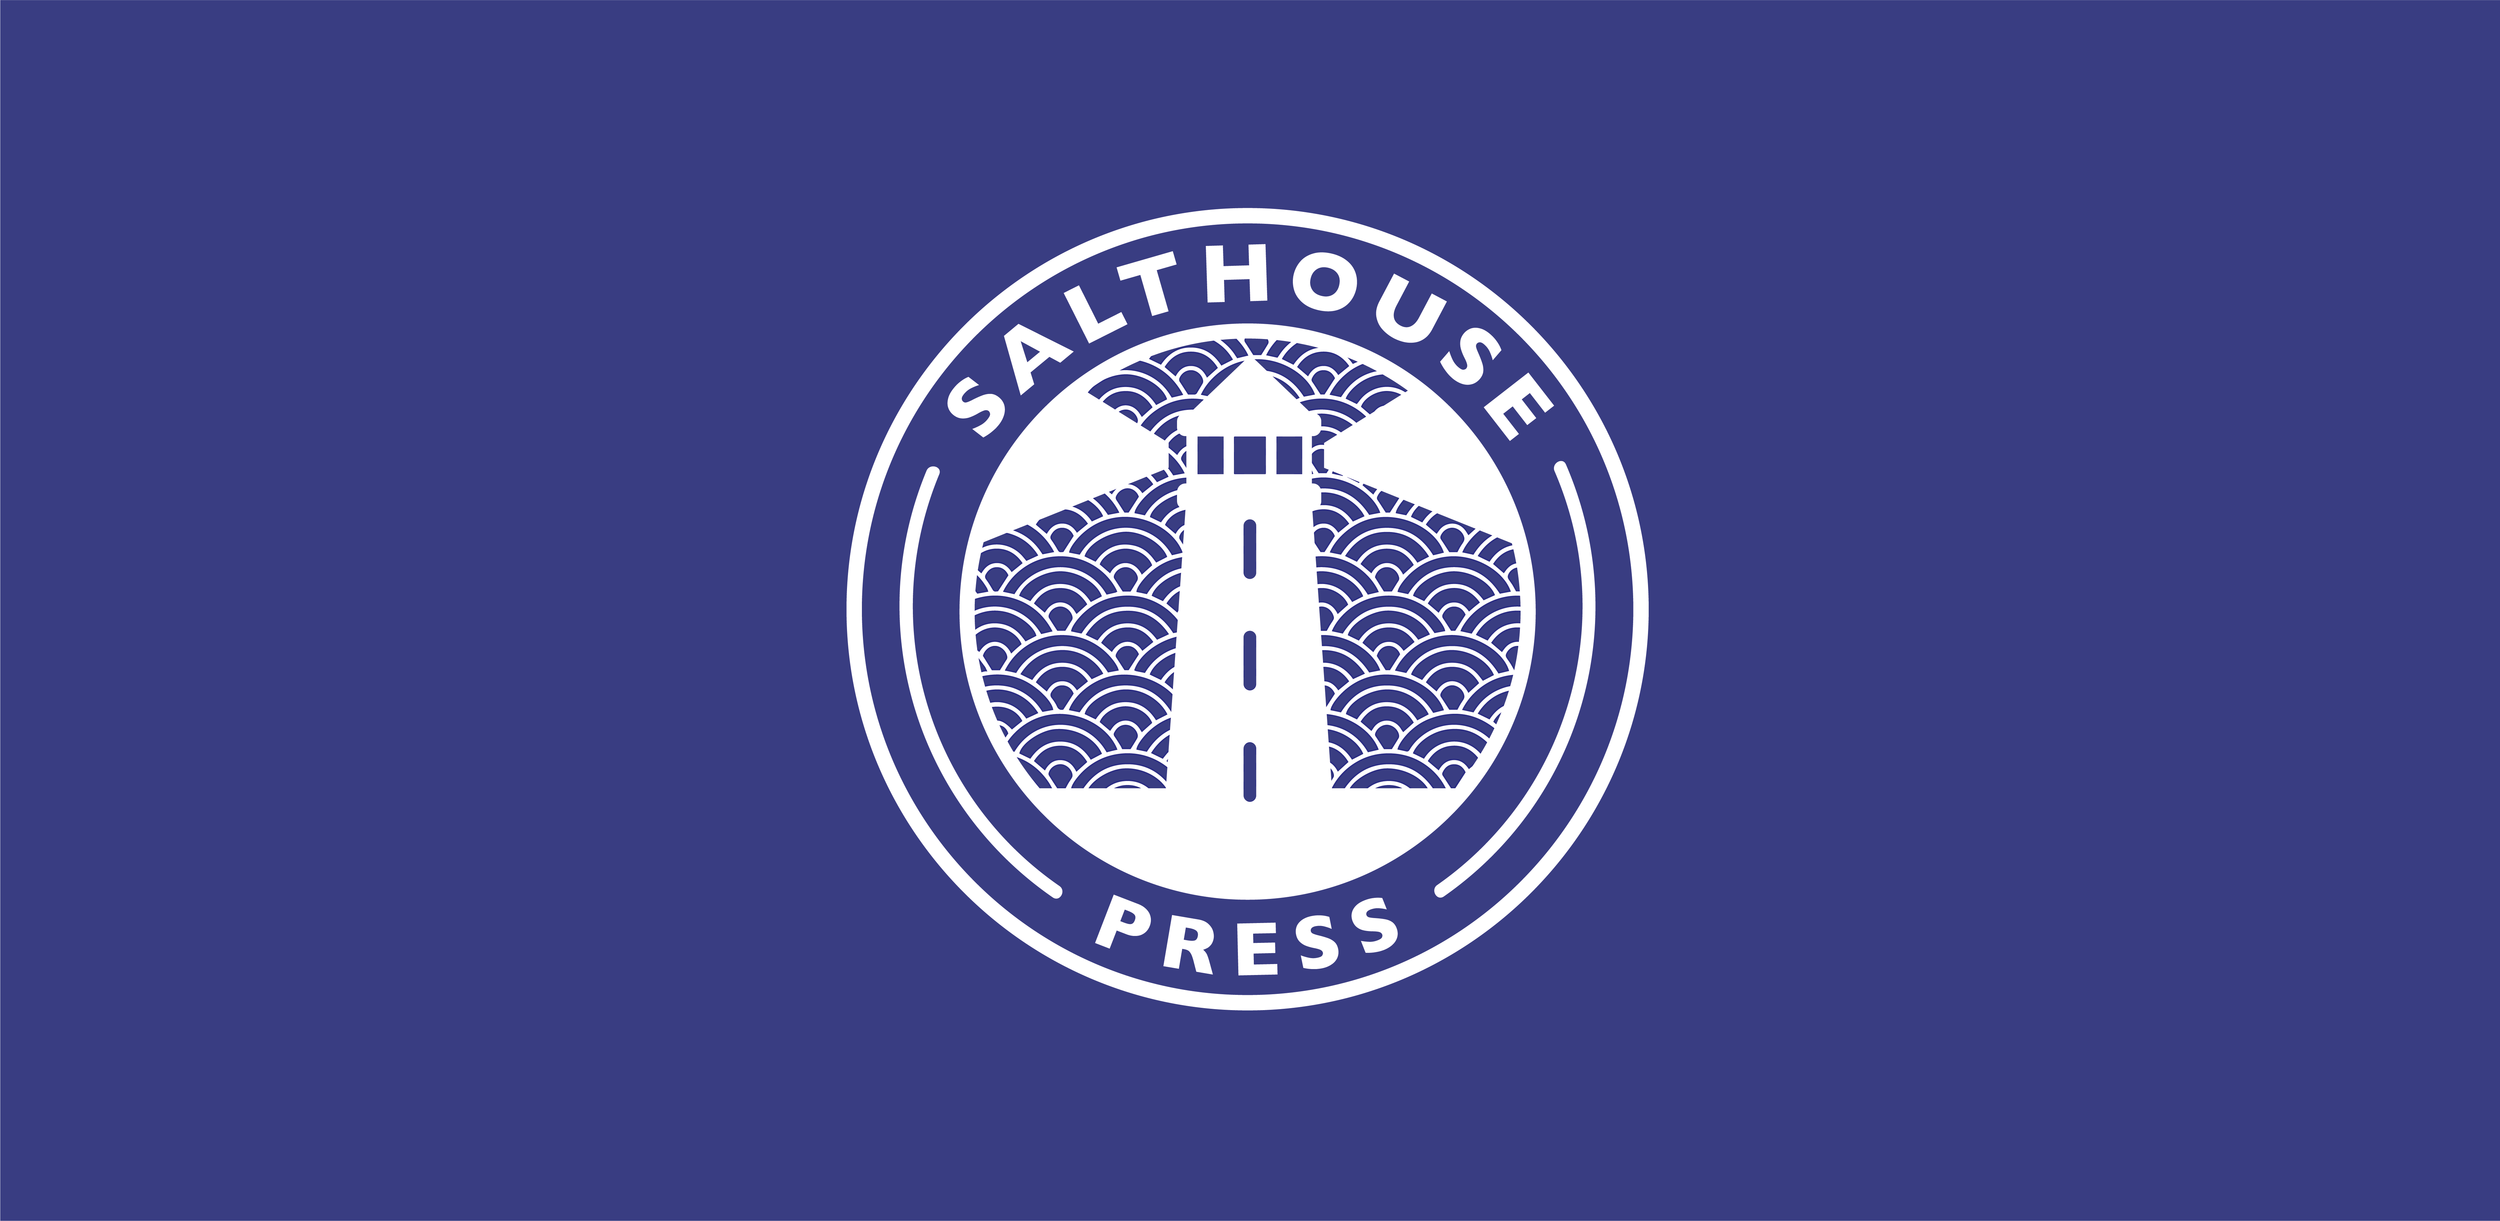 salthouse-01-01.png